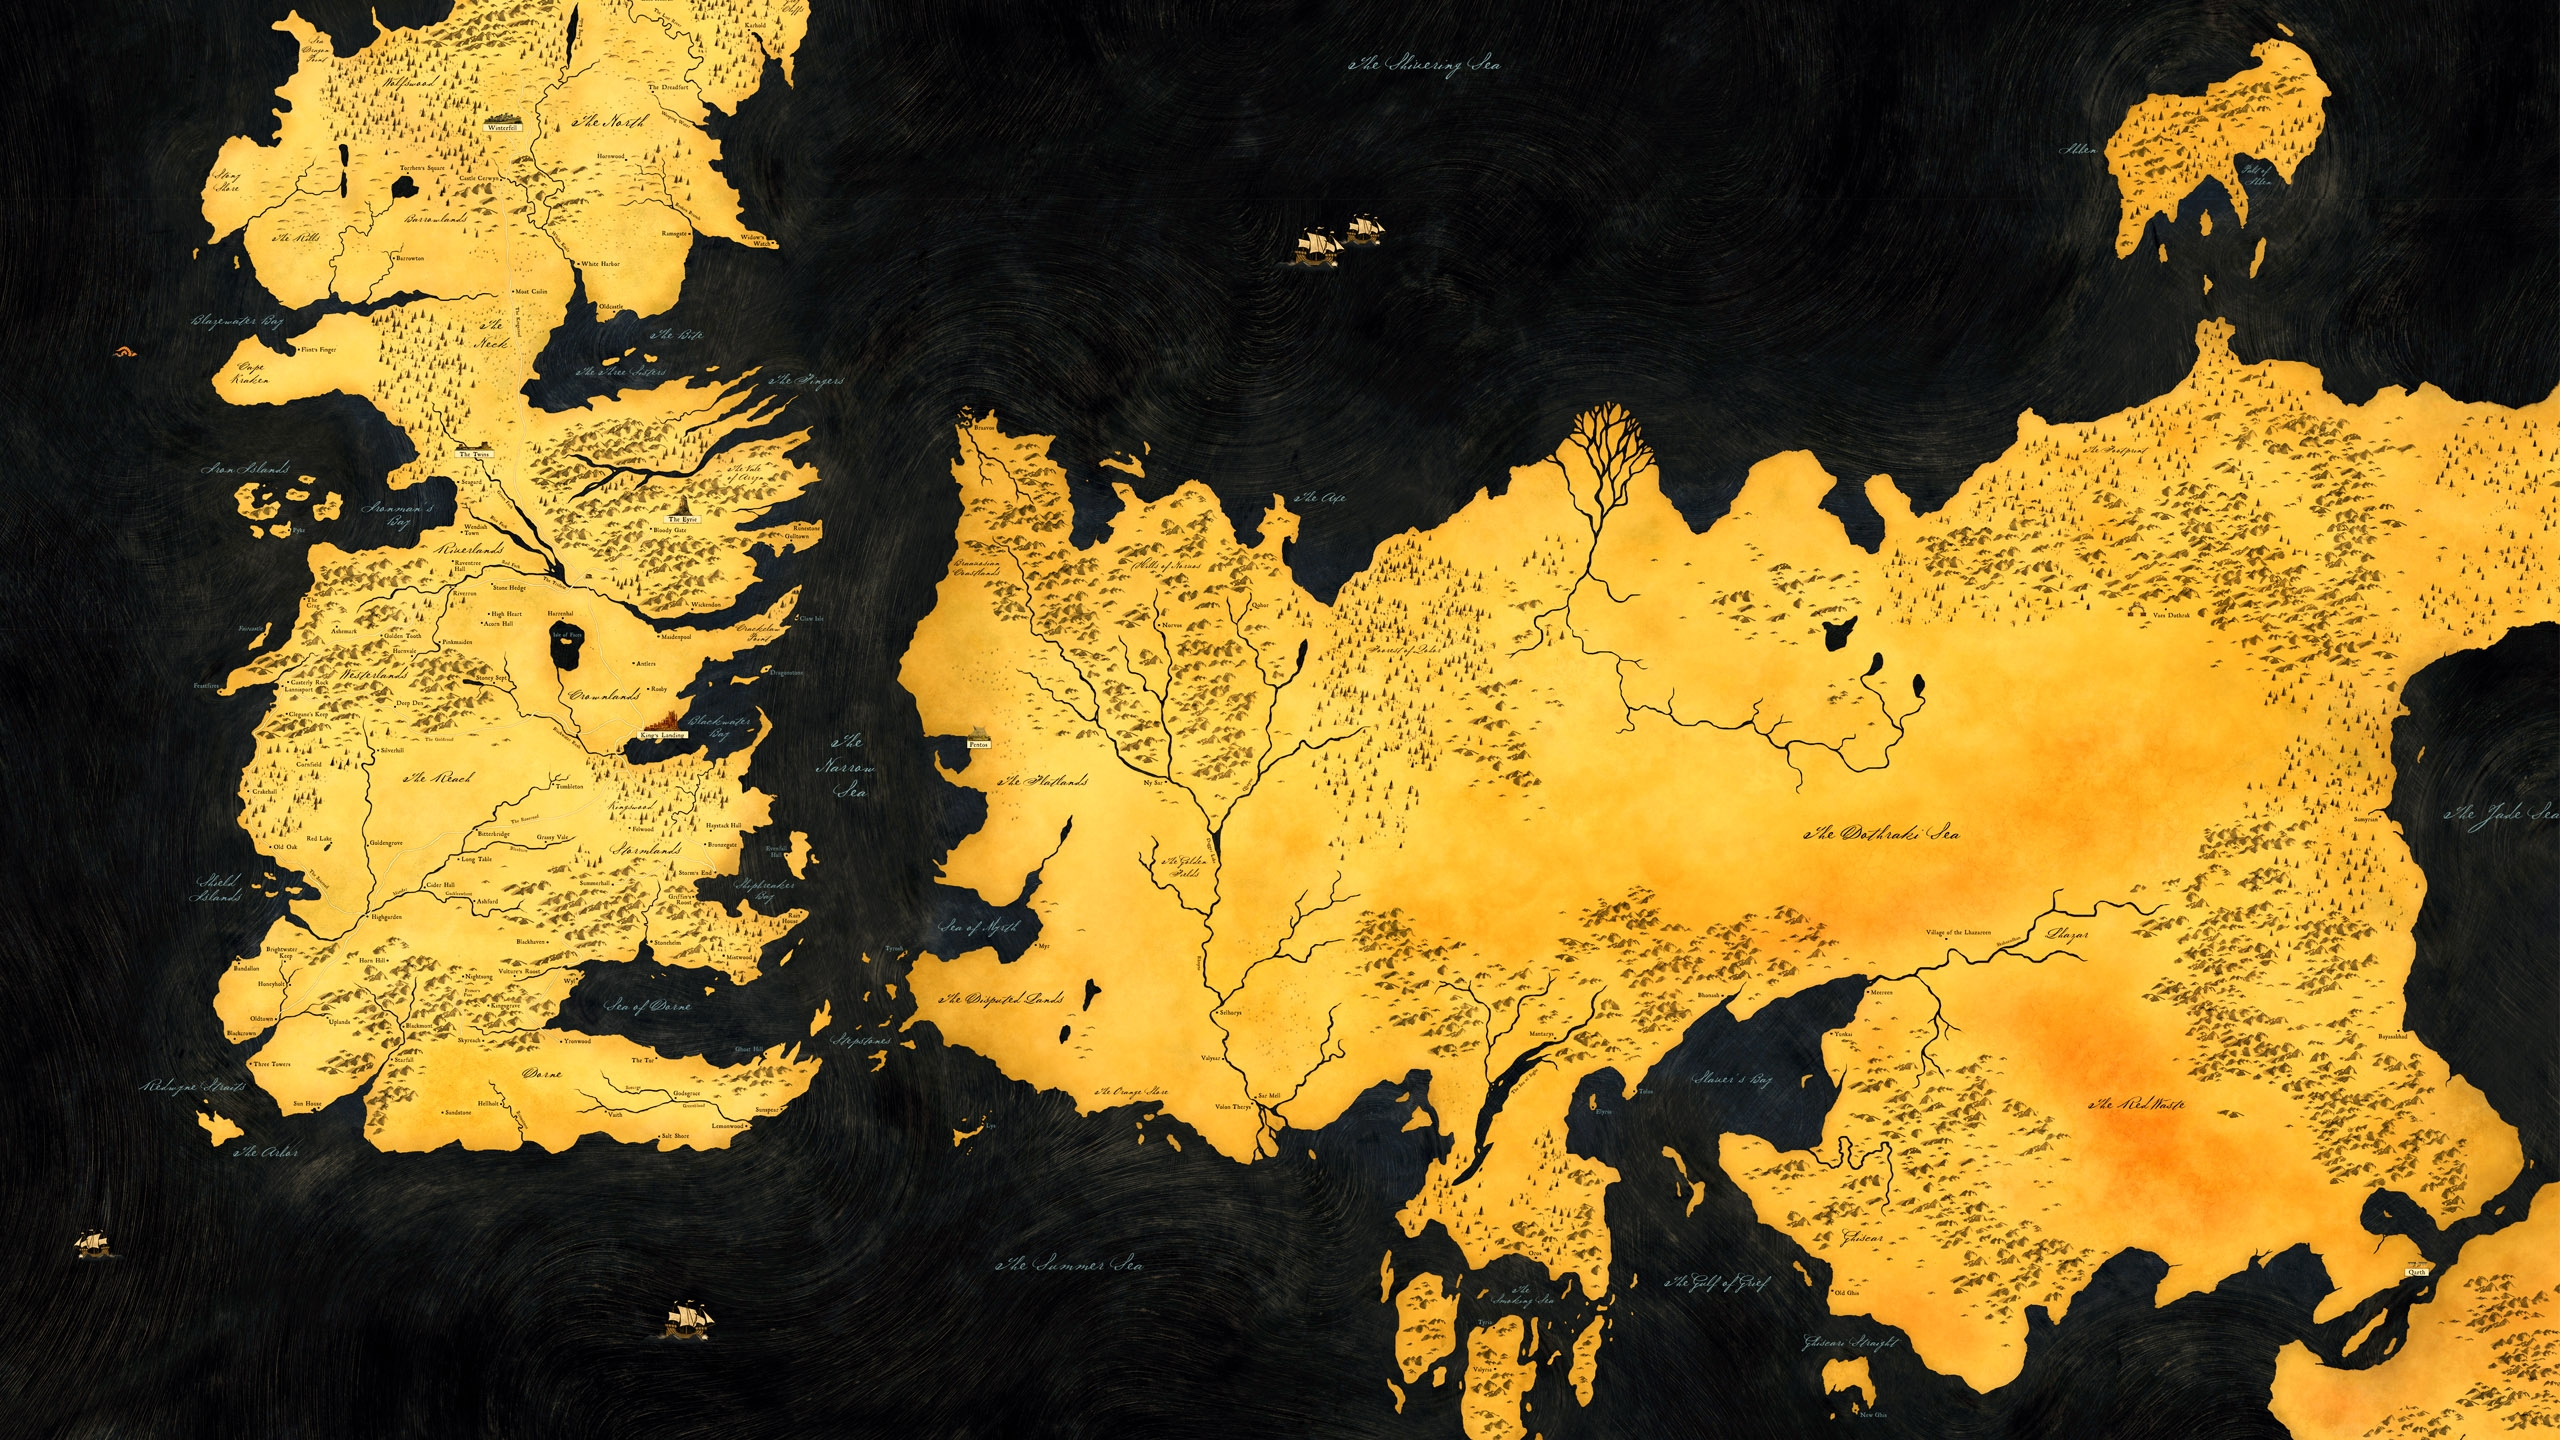 34 Game Of Thrones Maps Wallpapers On Wallpapersafari